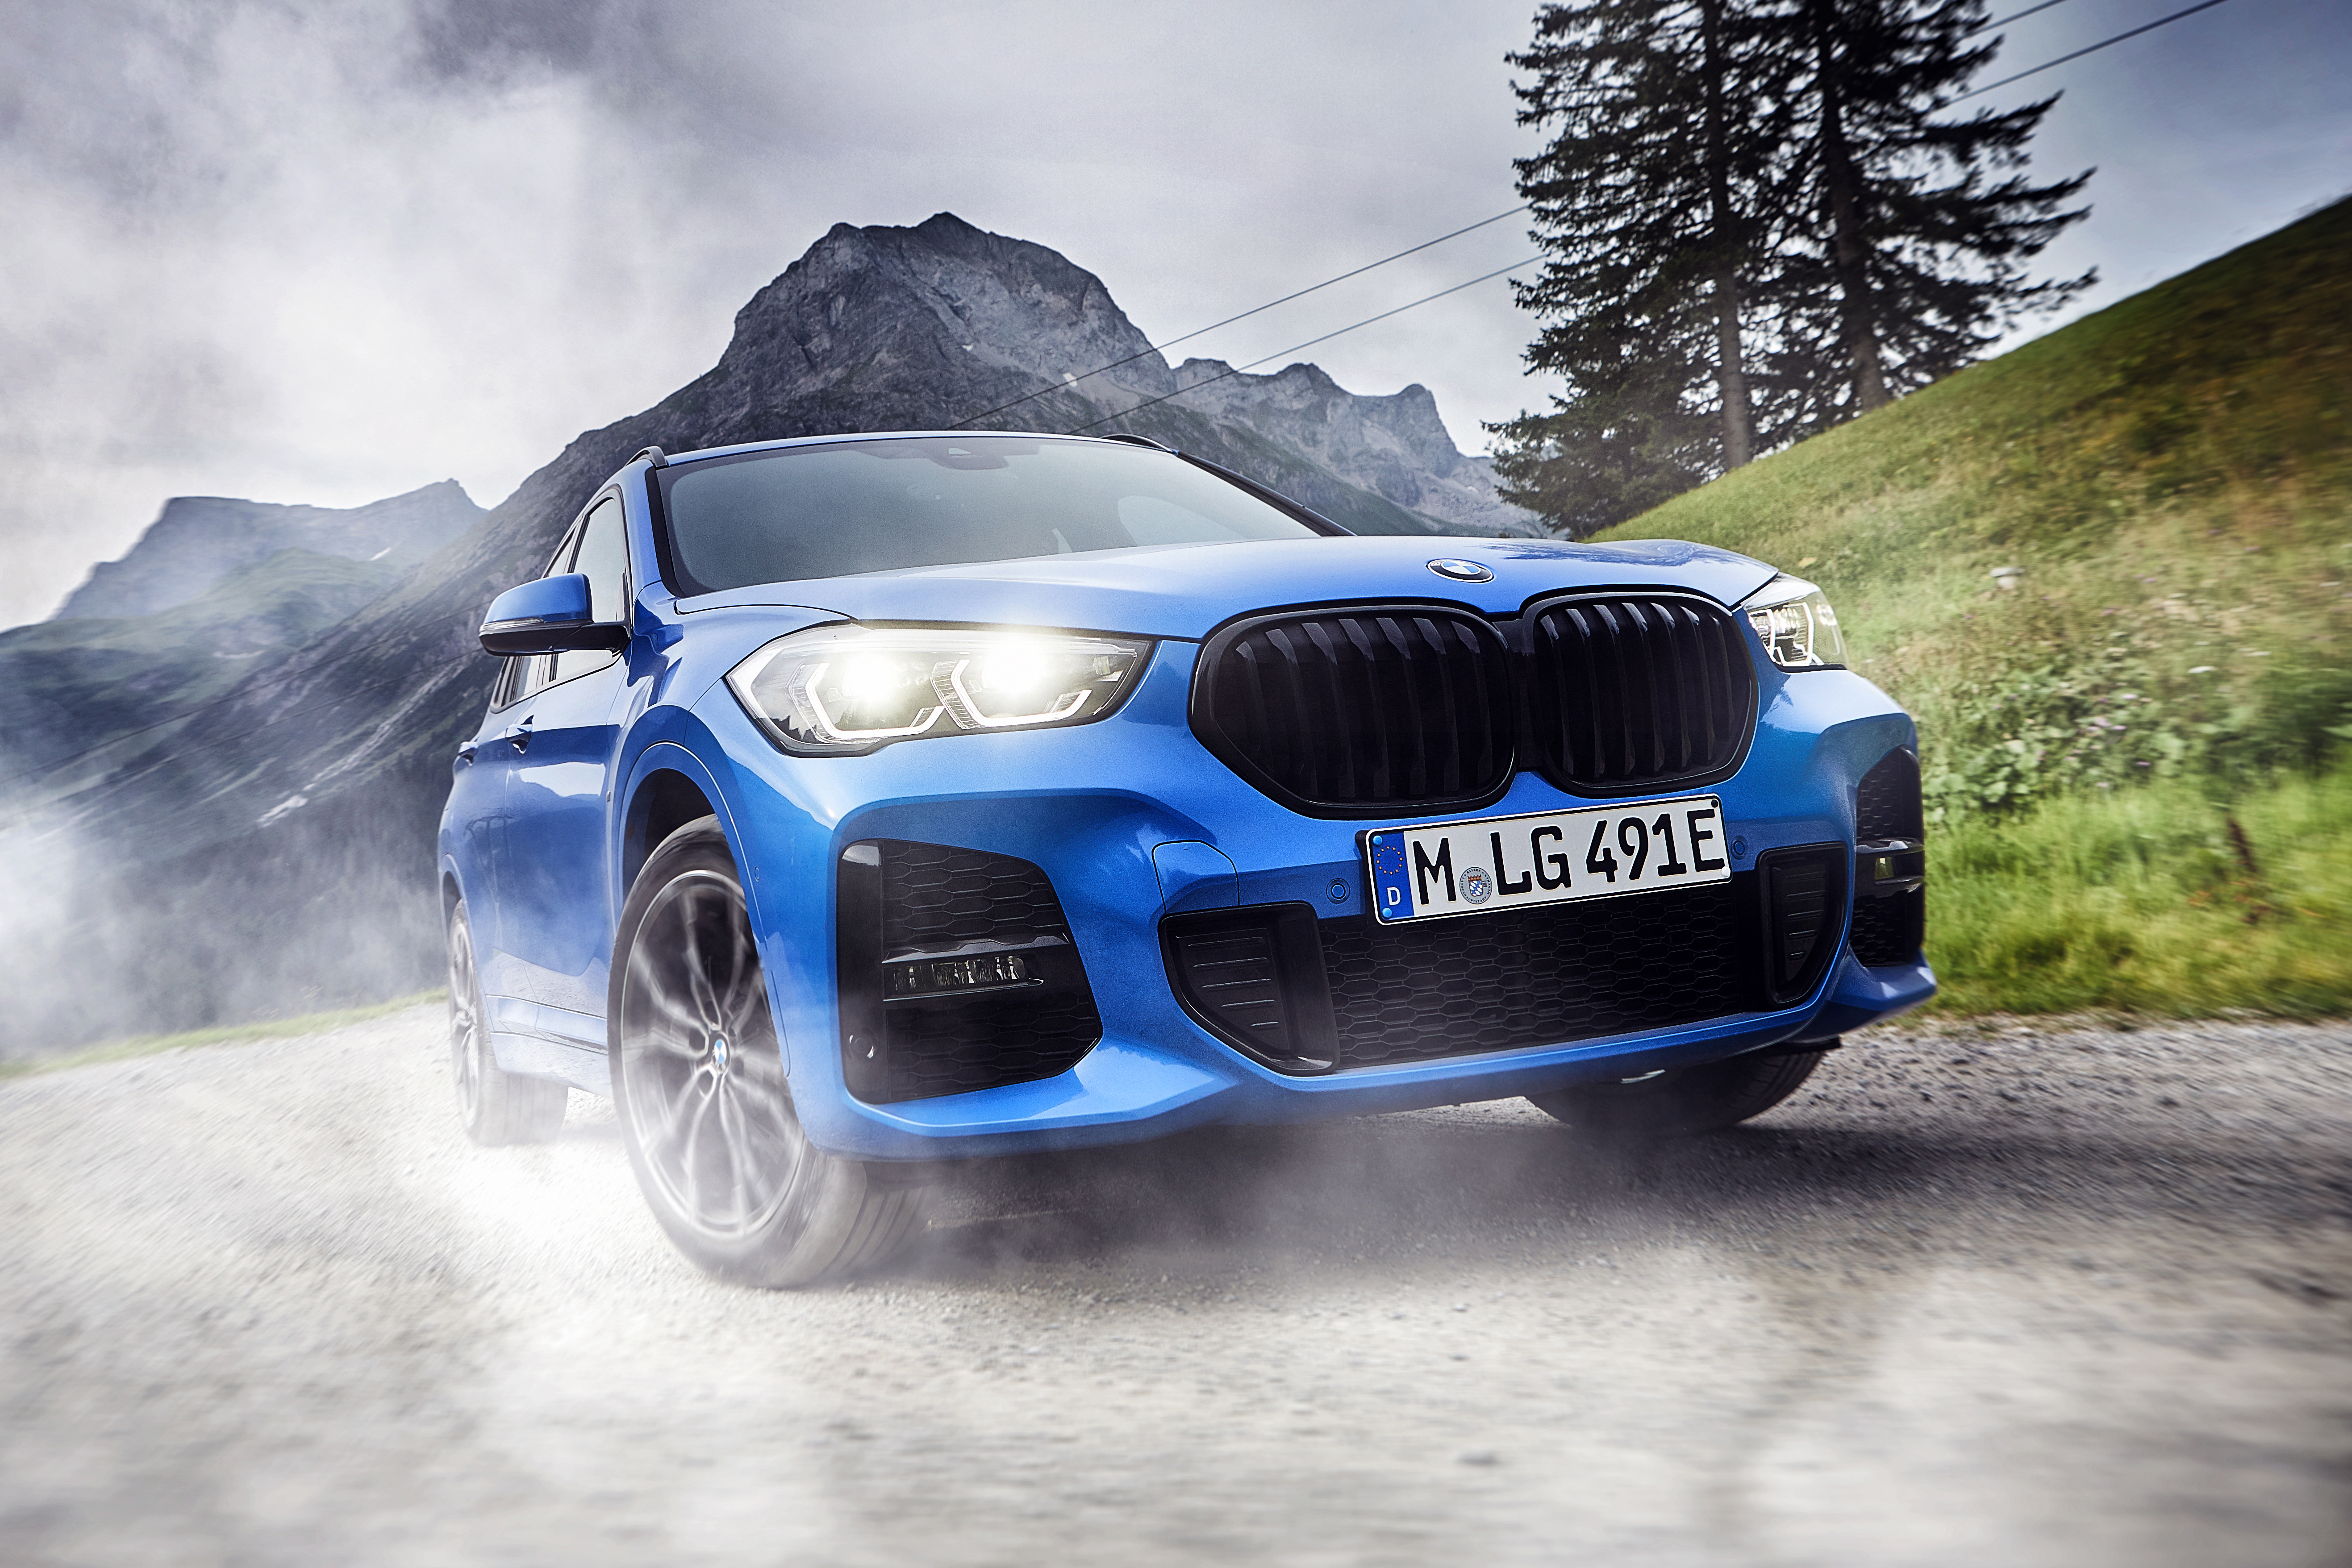 Bmw X1 And X2 Xdrive25e Plug In Hybrids More Specs Released Carbuyer